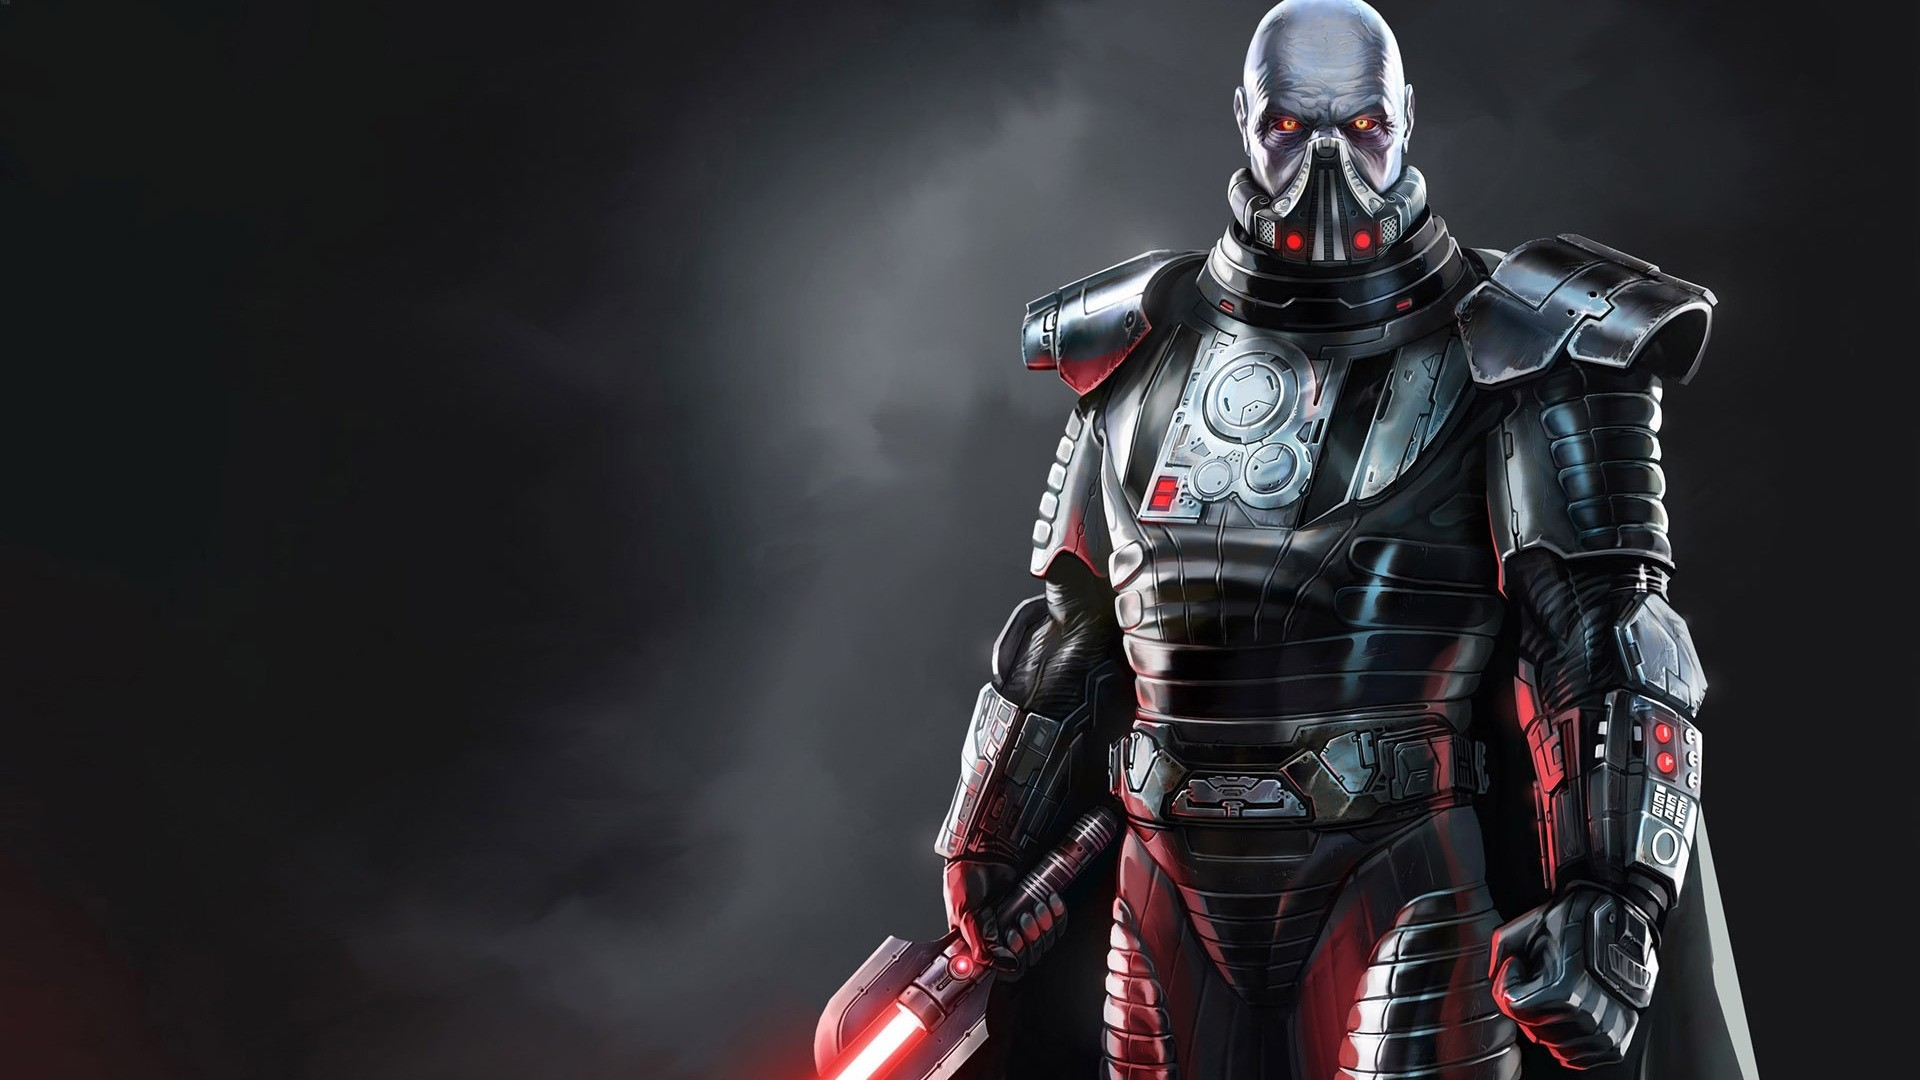 Star Wars Sith Wallpapers High Definition As Wallpaper HD